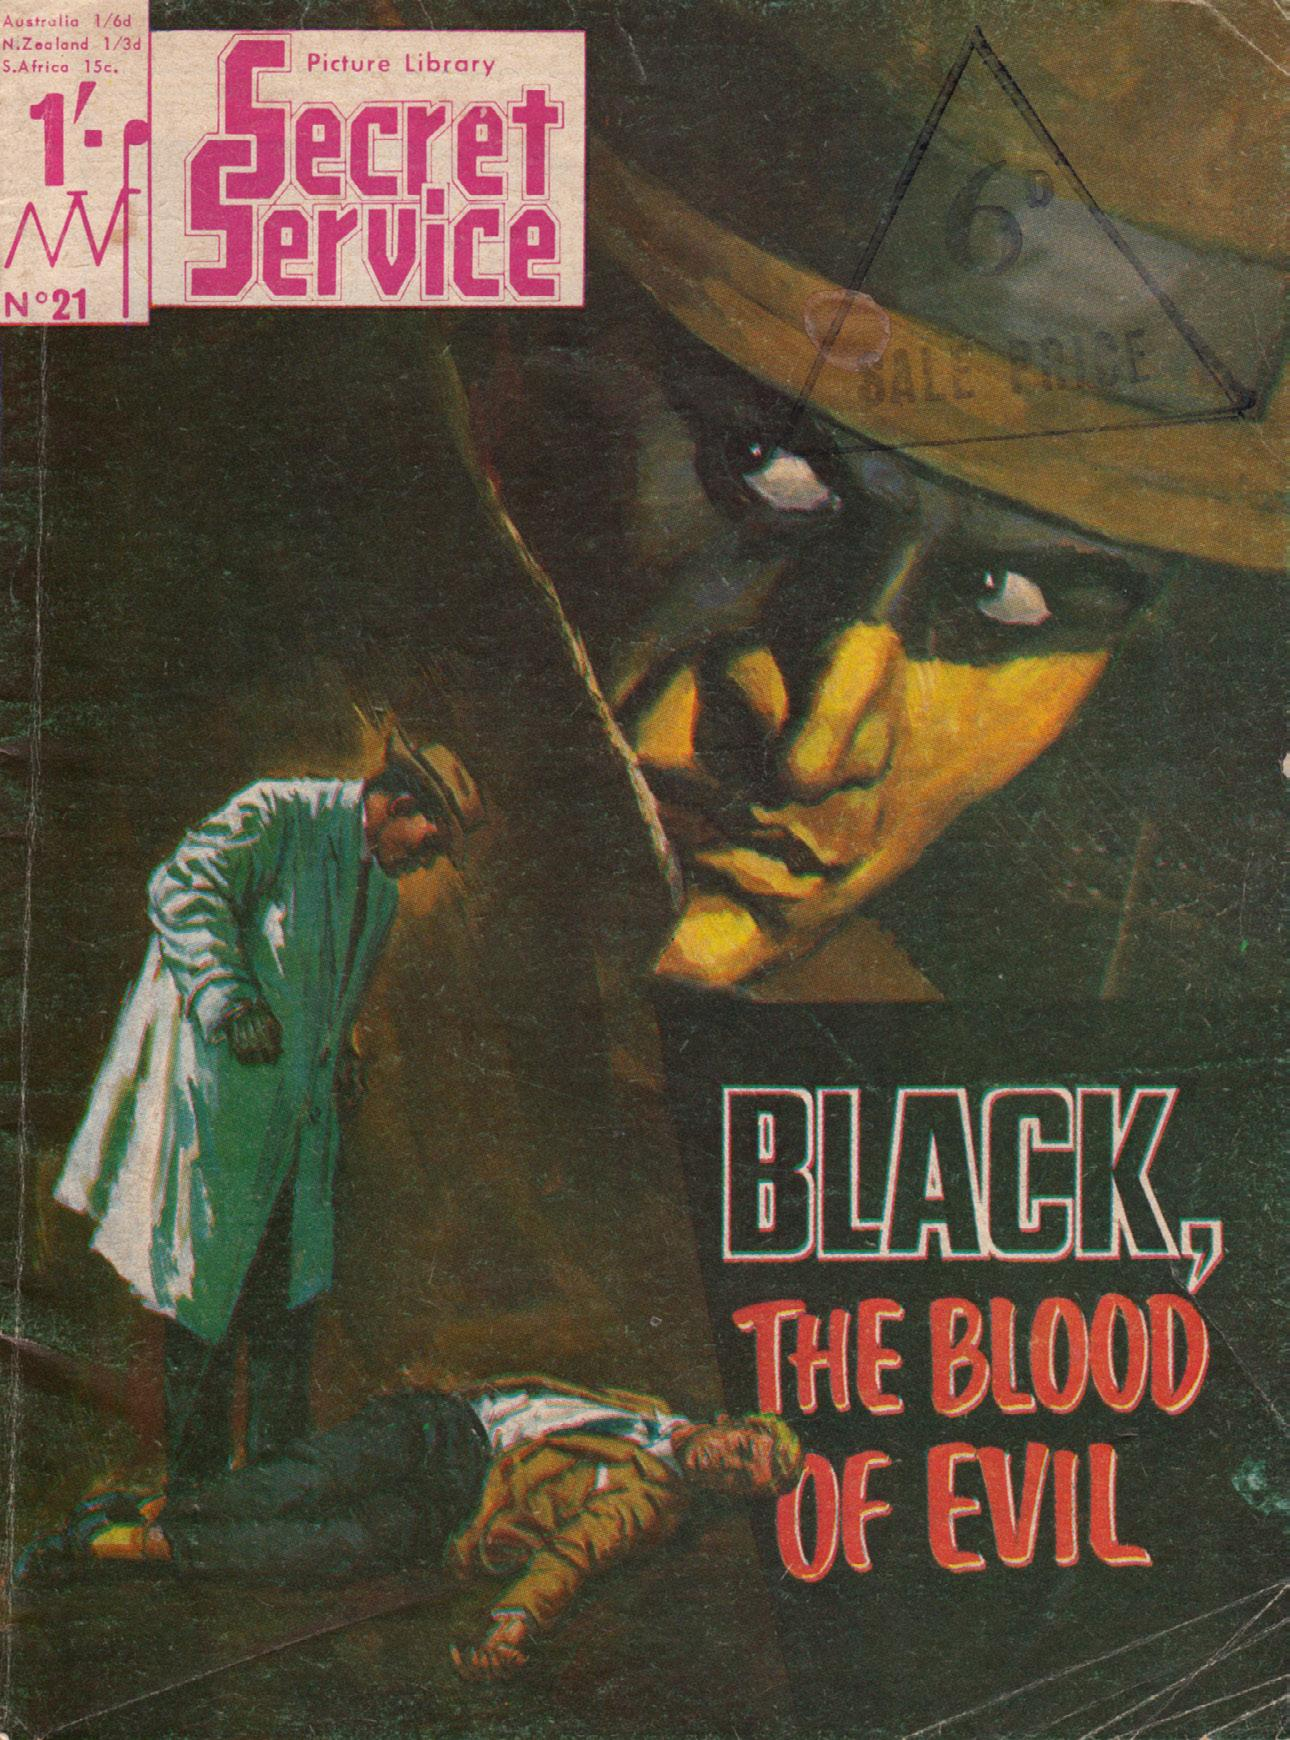 Secret Service Picture Library 021-Black, The Blood of Evil 1966 Mr Tweedy